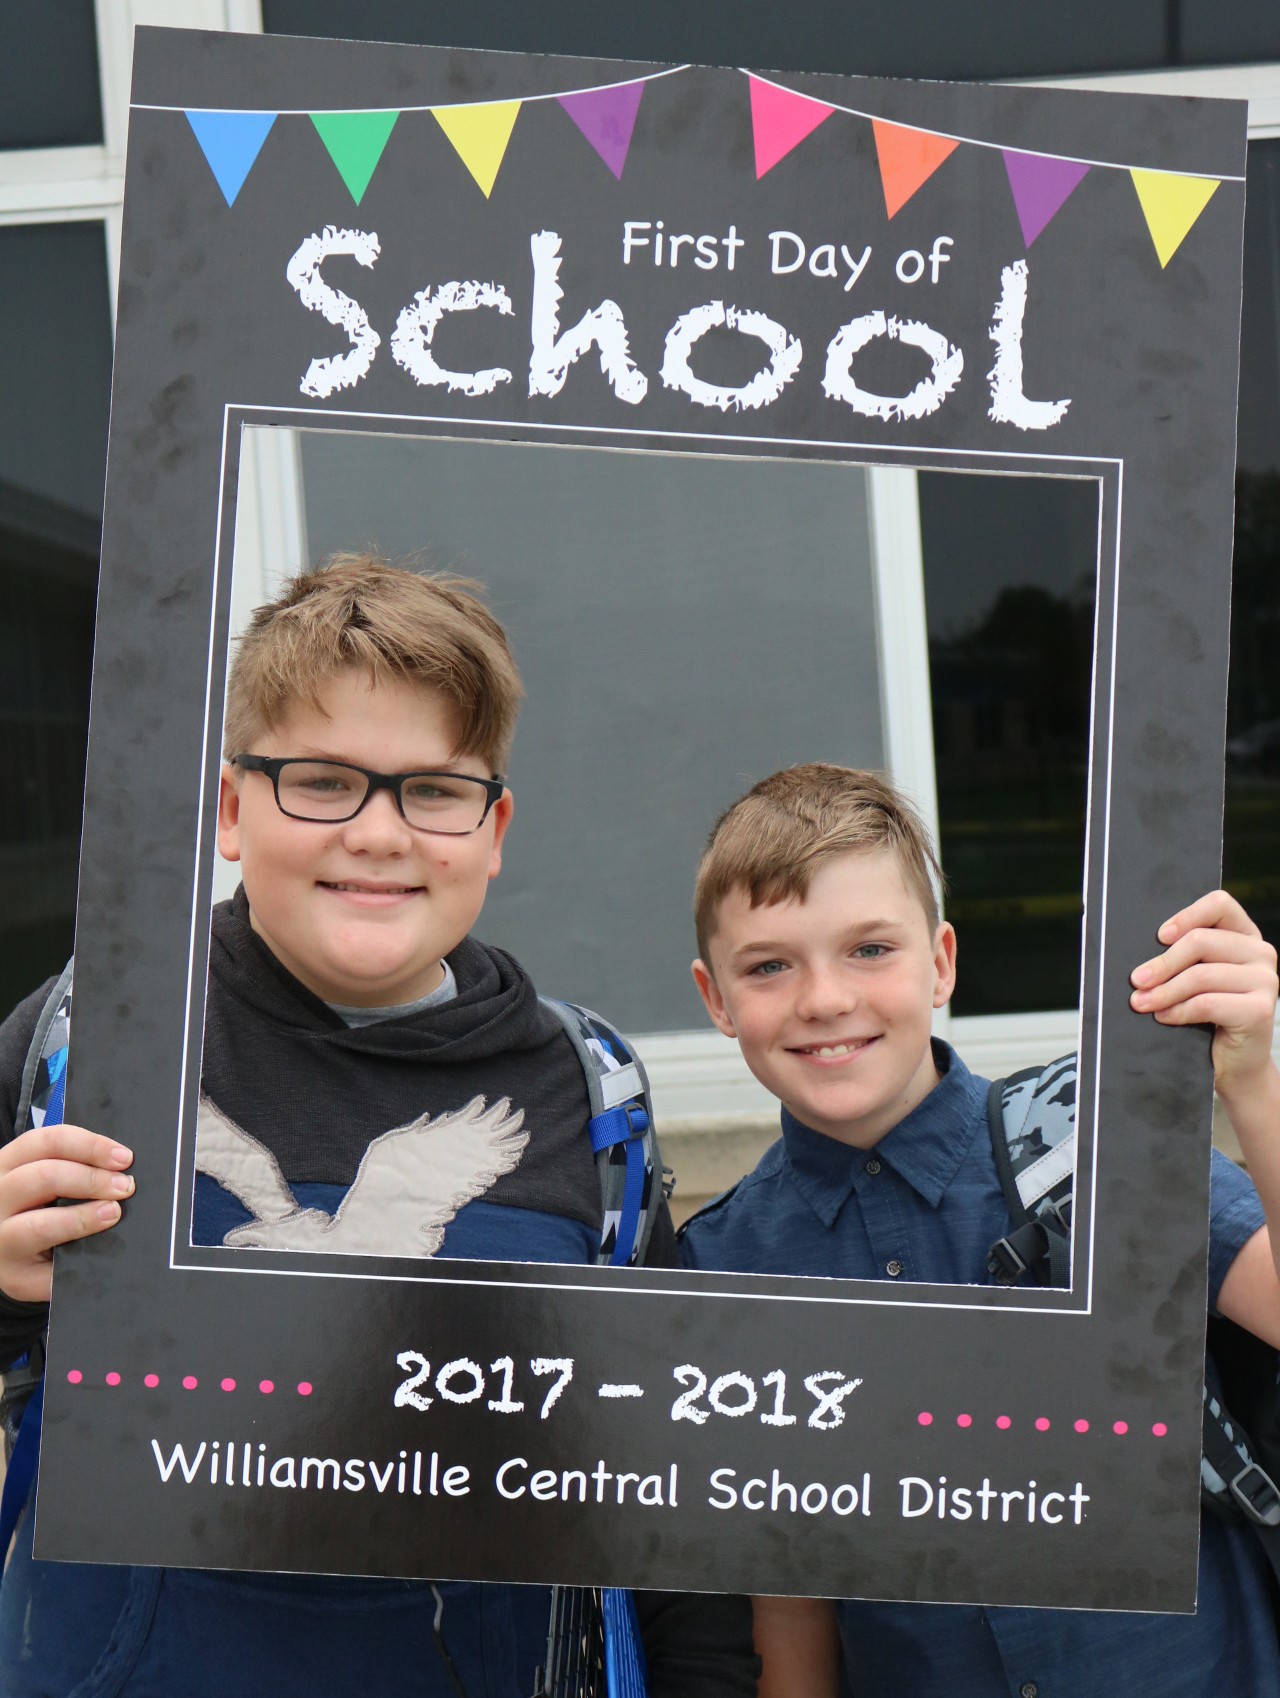 Middle school students hold photo frame